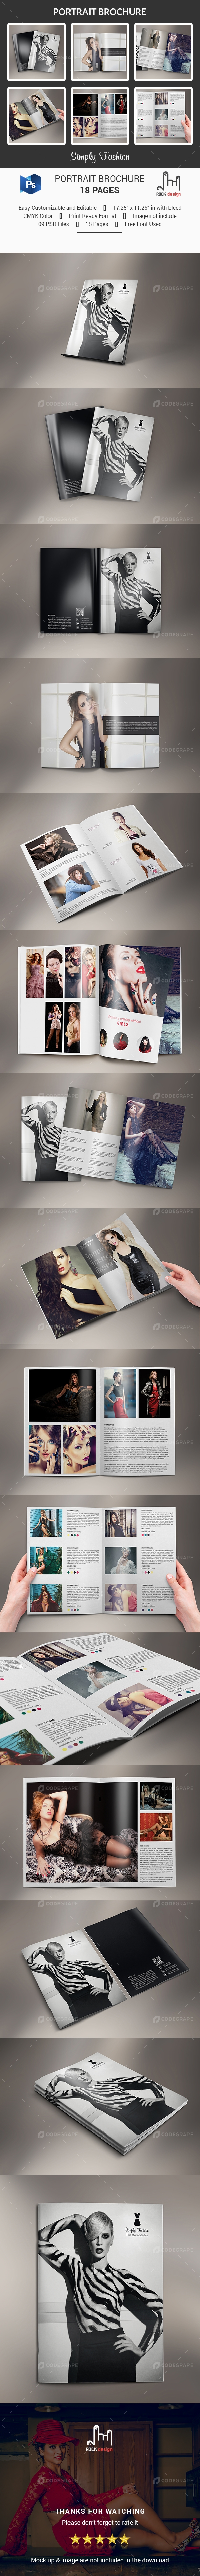 Simply Fashion Portrait Brochure - 18 Pages